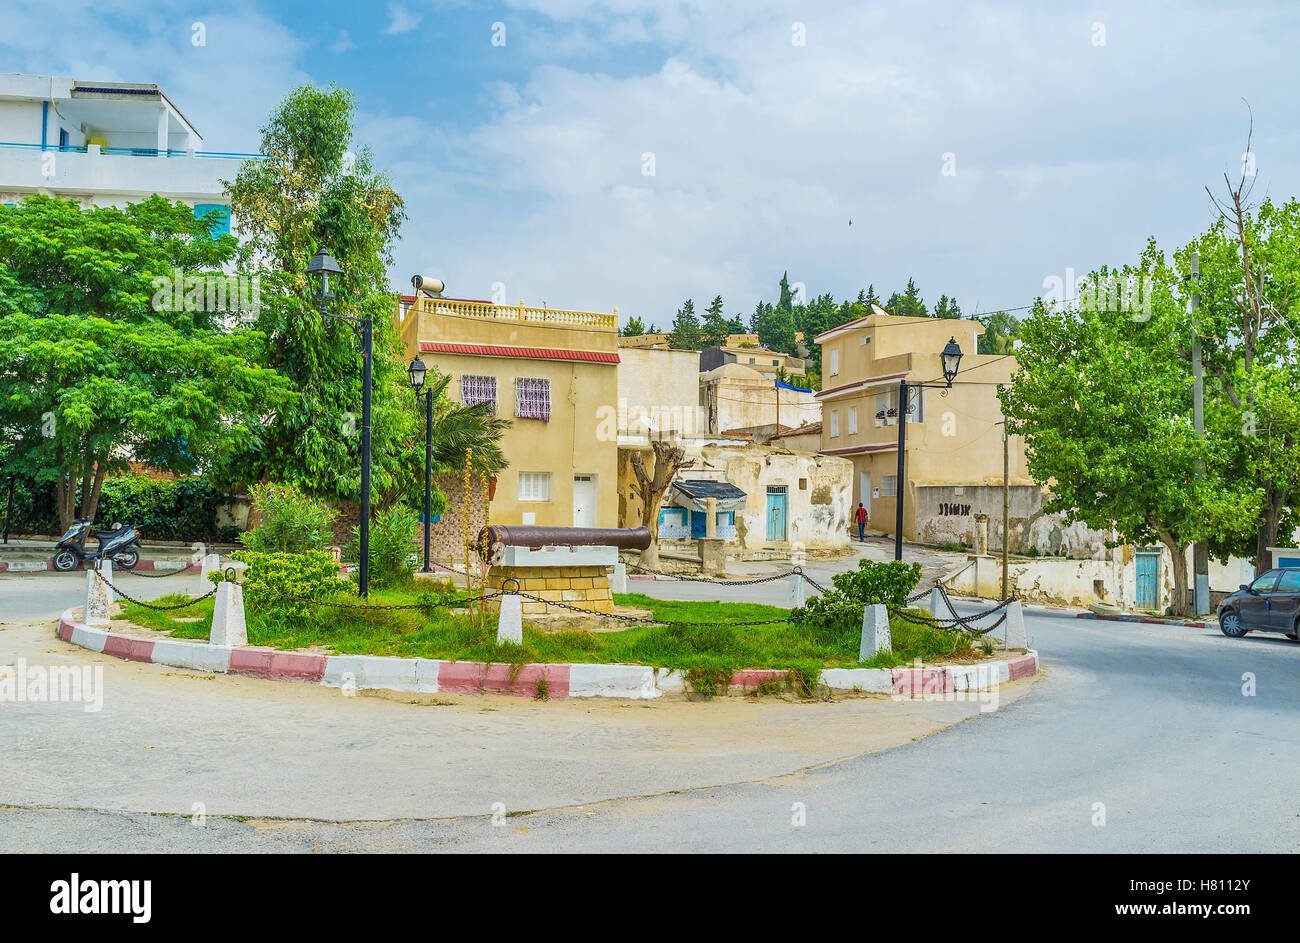 The small square on the hilly area in the old town of El Kef, Tunisia. - Stock Image